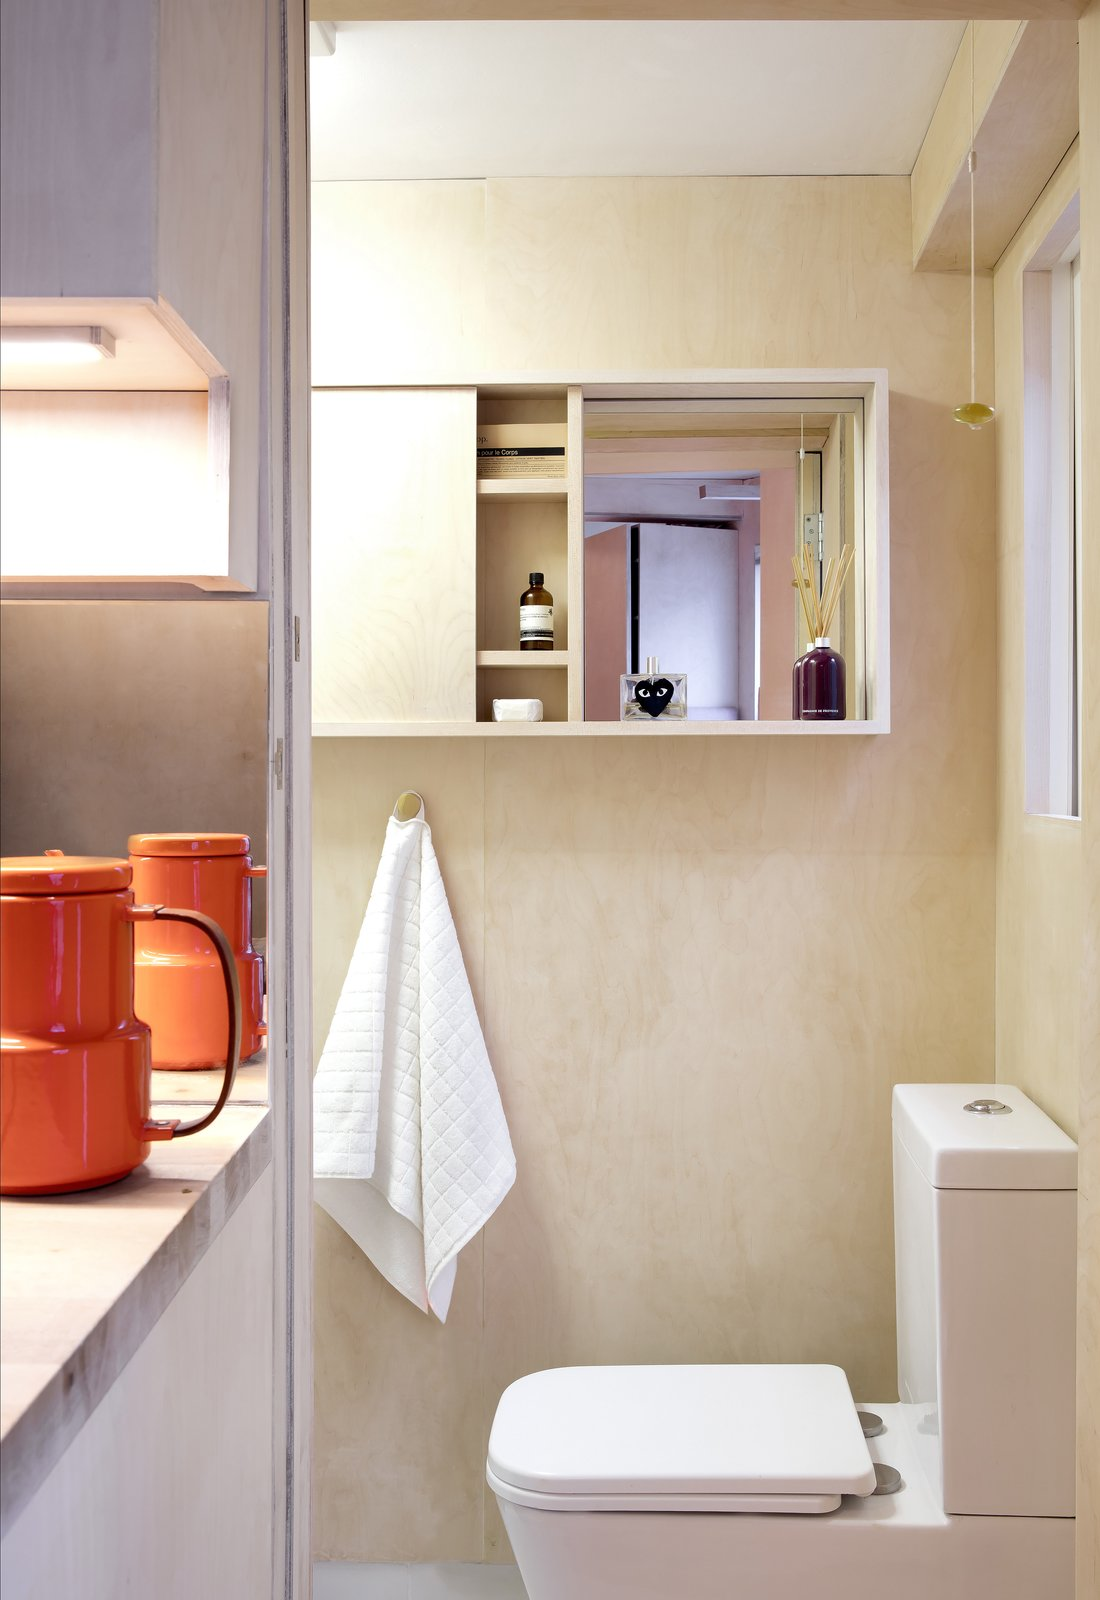 Bath Room, Wood Counter, and One Piece Toilet The bathroom is the only space that's separated by a wall.  Photos from This Tiny 140-Square-Foot Apartment Boasts Comfort and Function